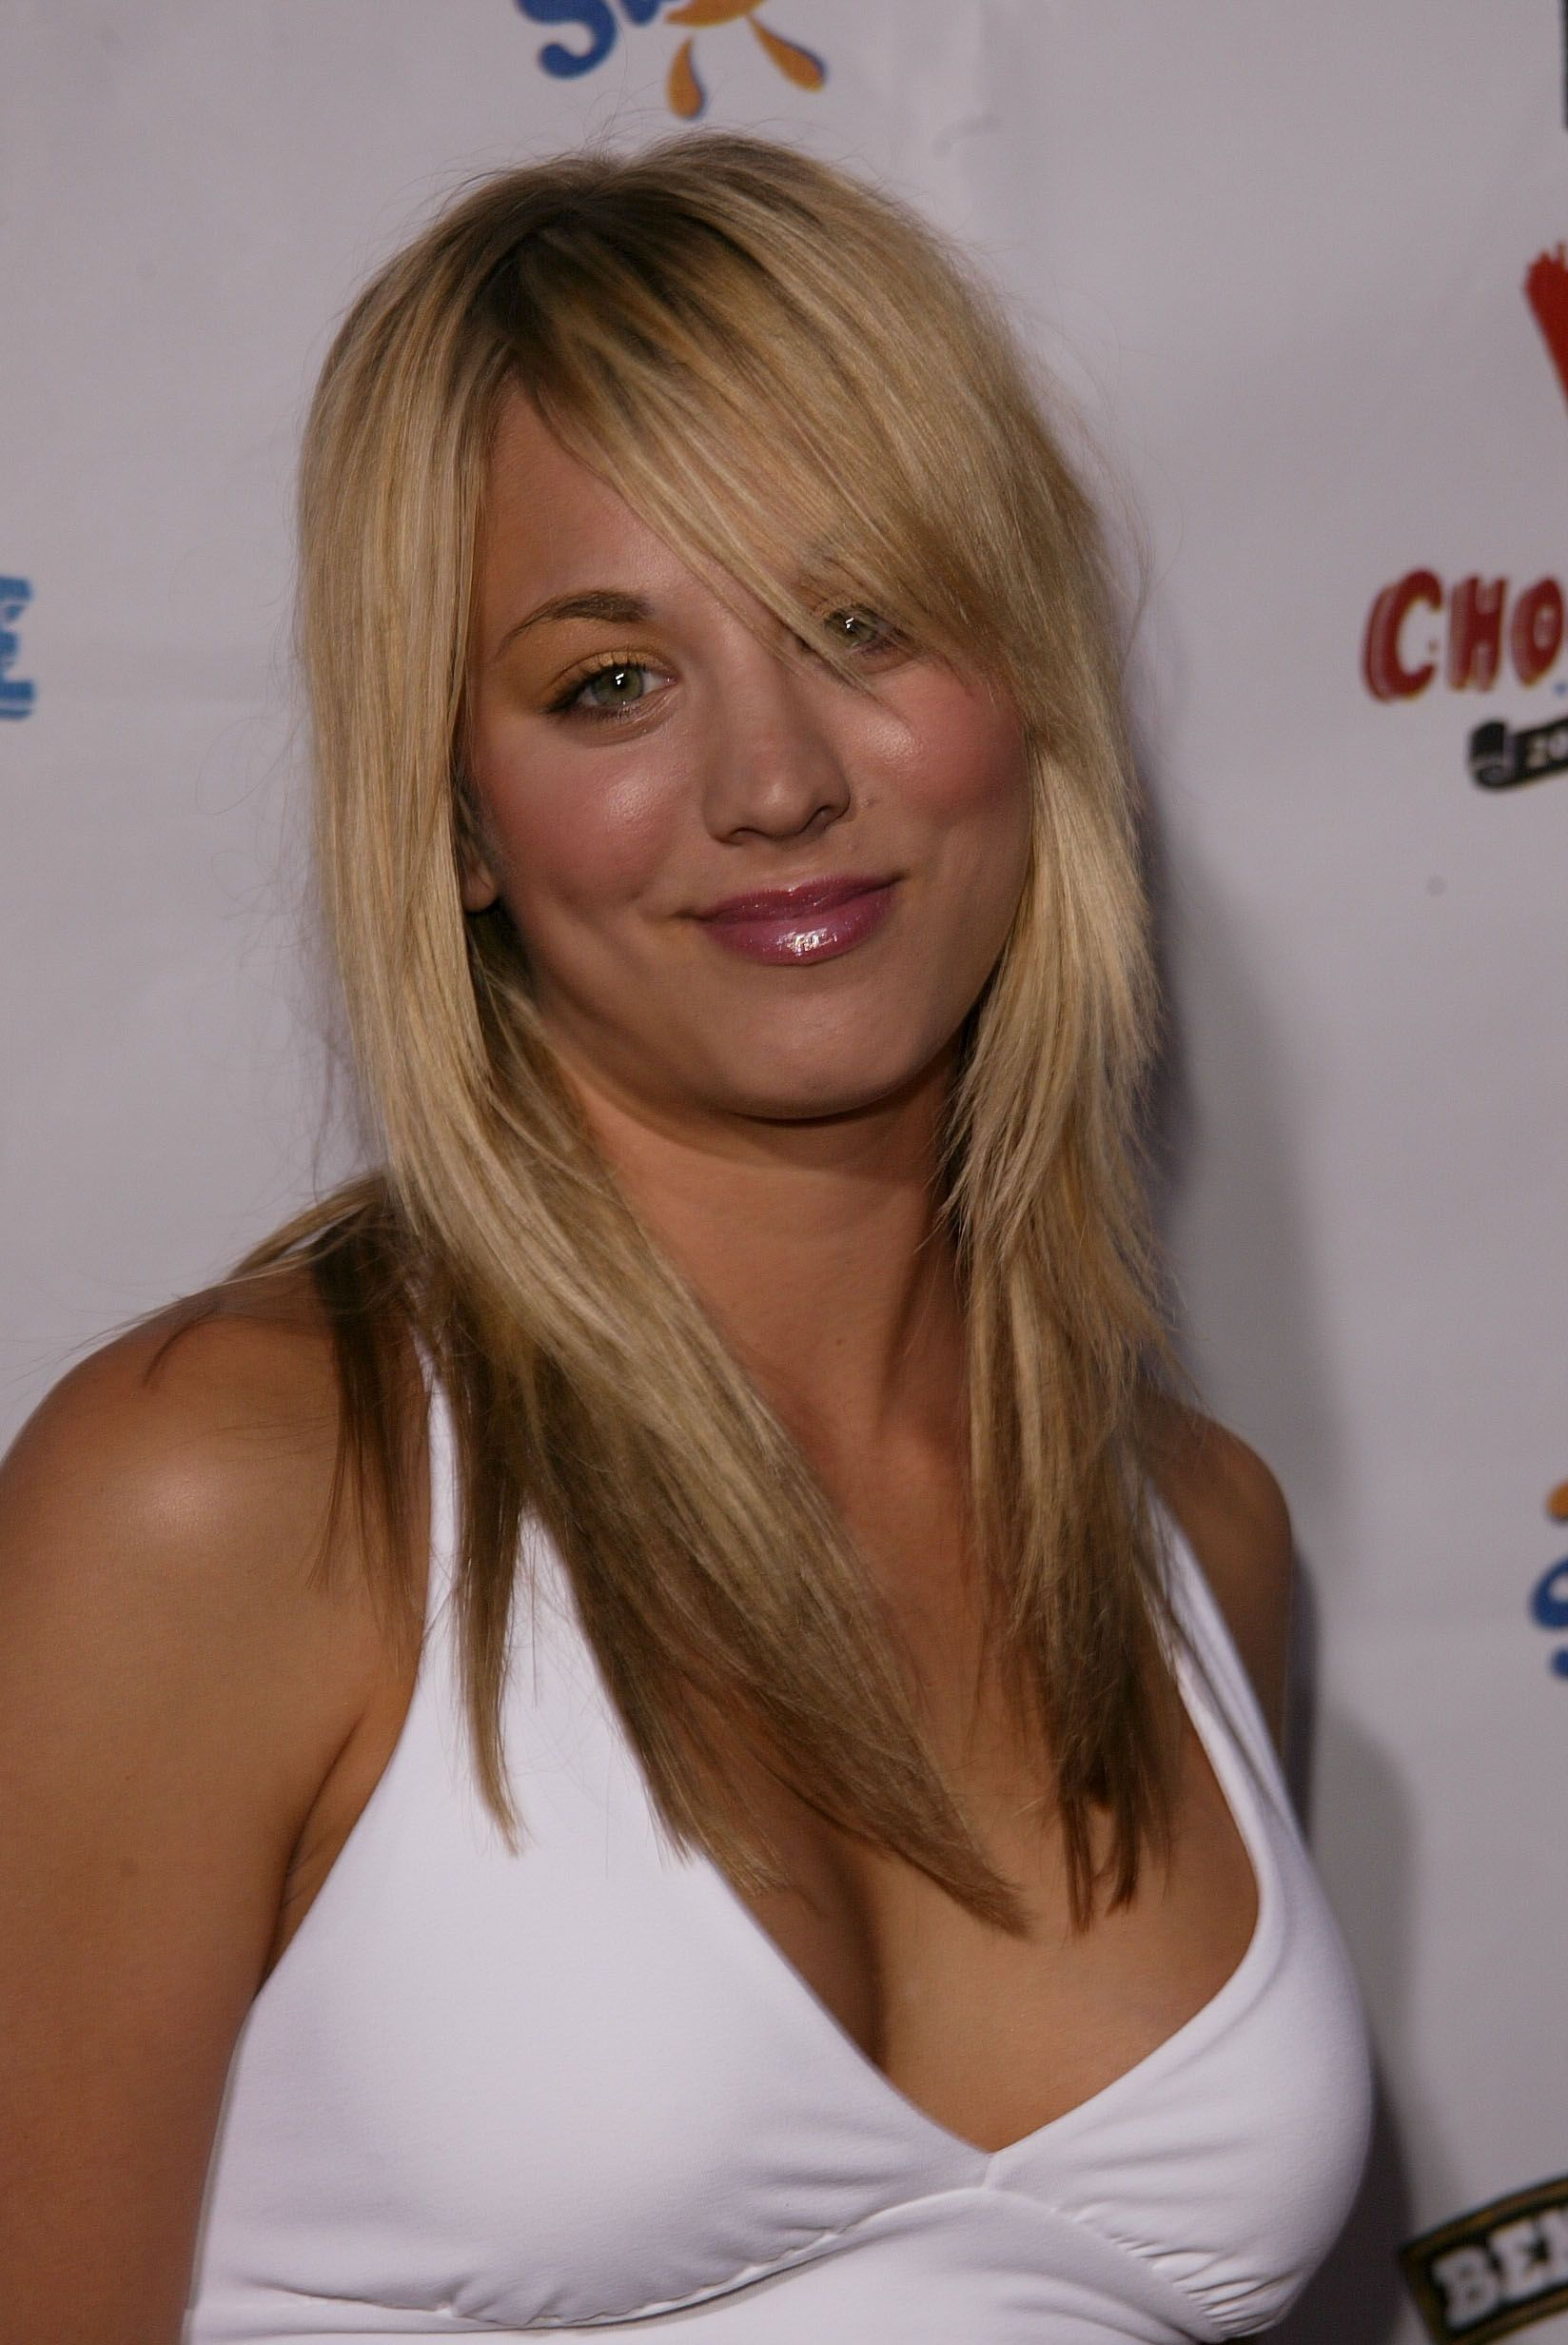 Kaley Cuoco Yahoo Image Search Results Kaley Cuoco Pinterest